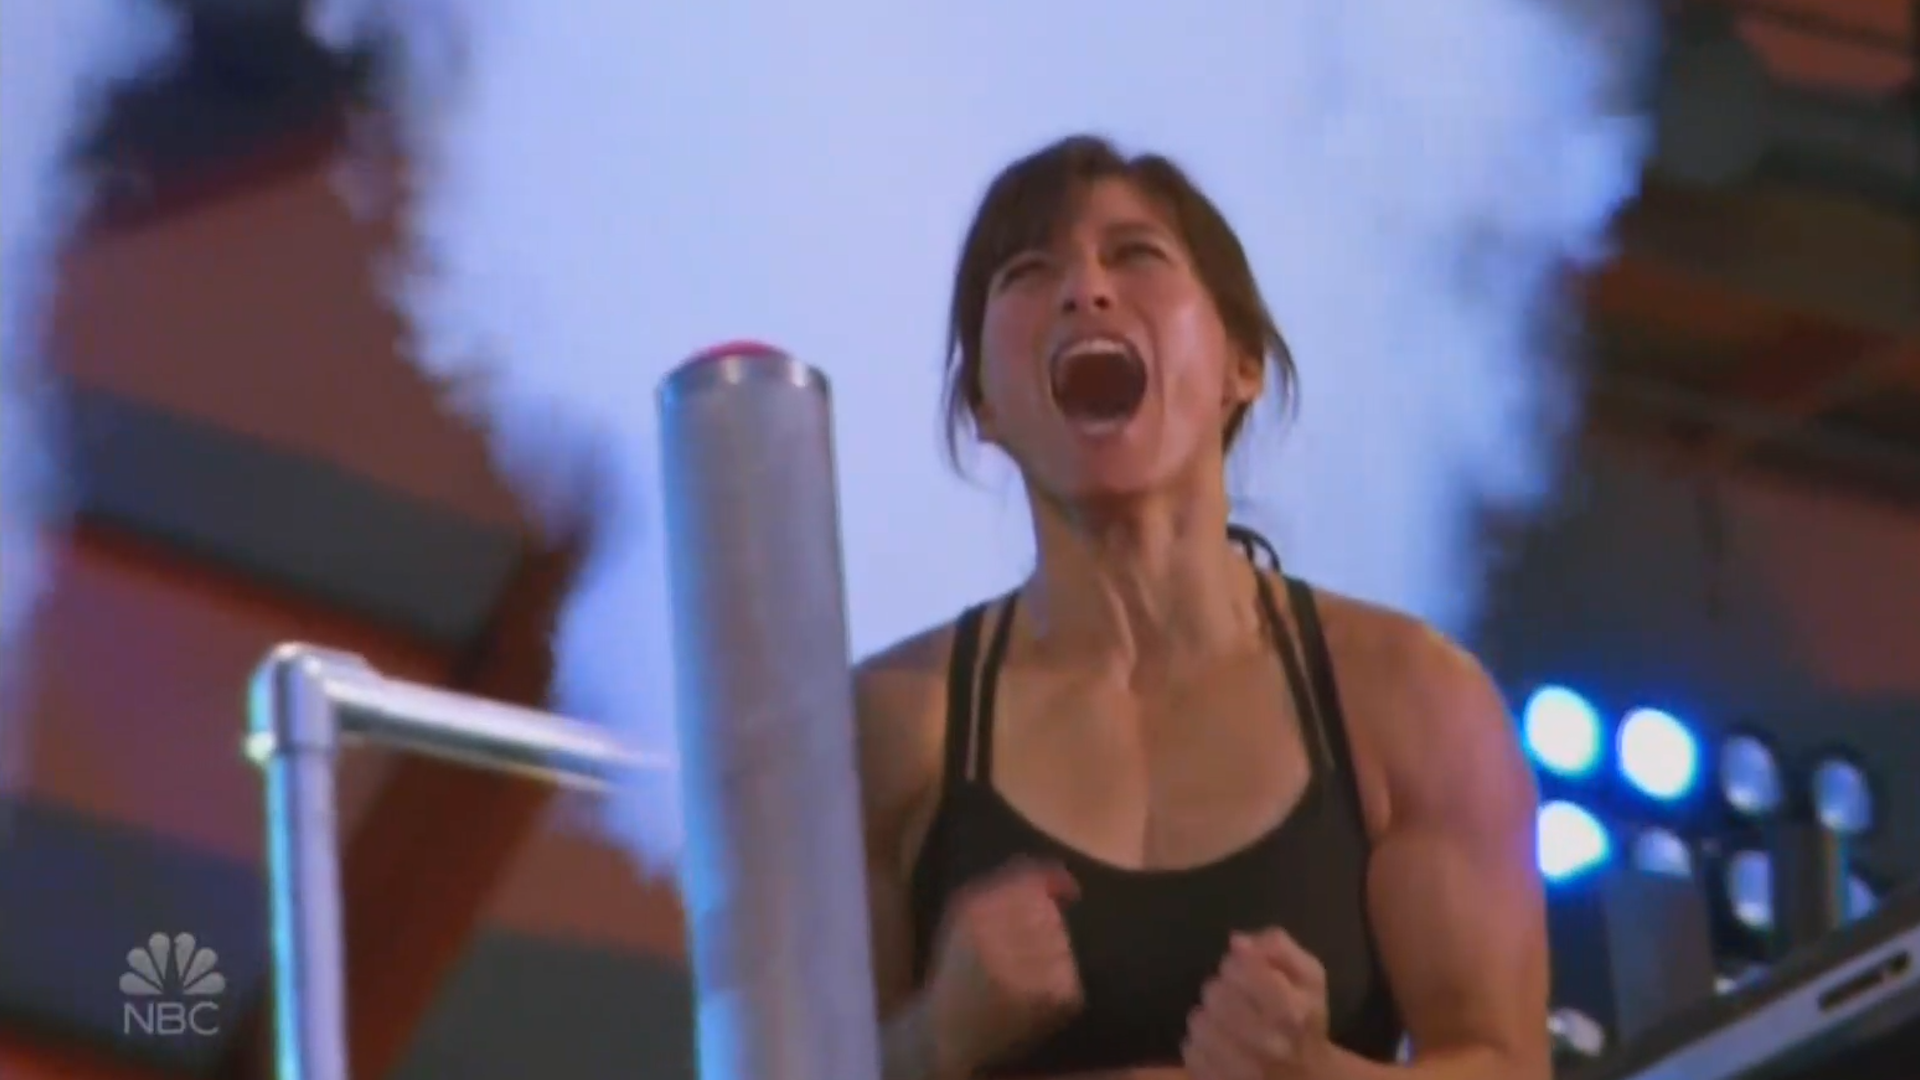 Phys Ed Teacher Becomes First Mother To Complete 'American Ninja Warrior' Course